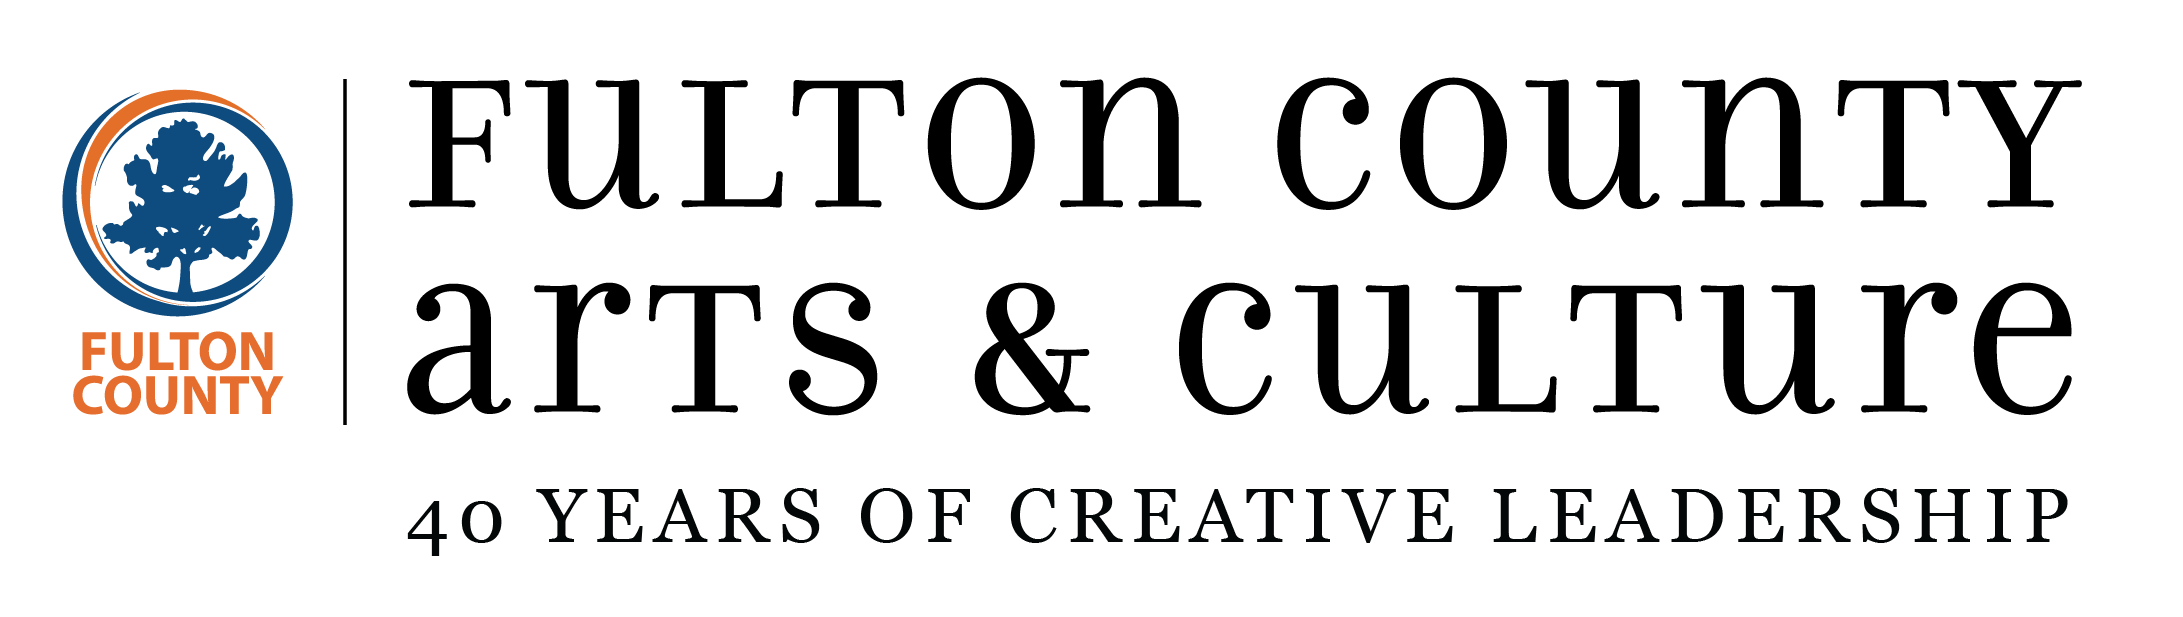 Fulton County Arts and Culture